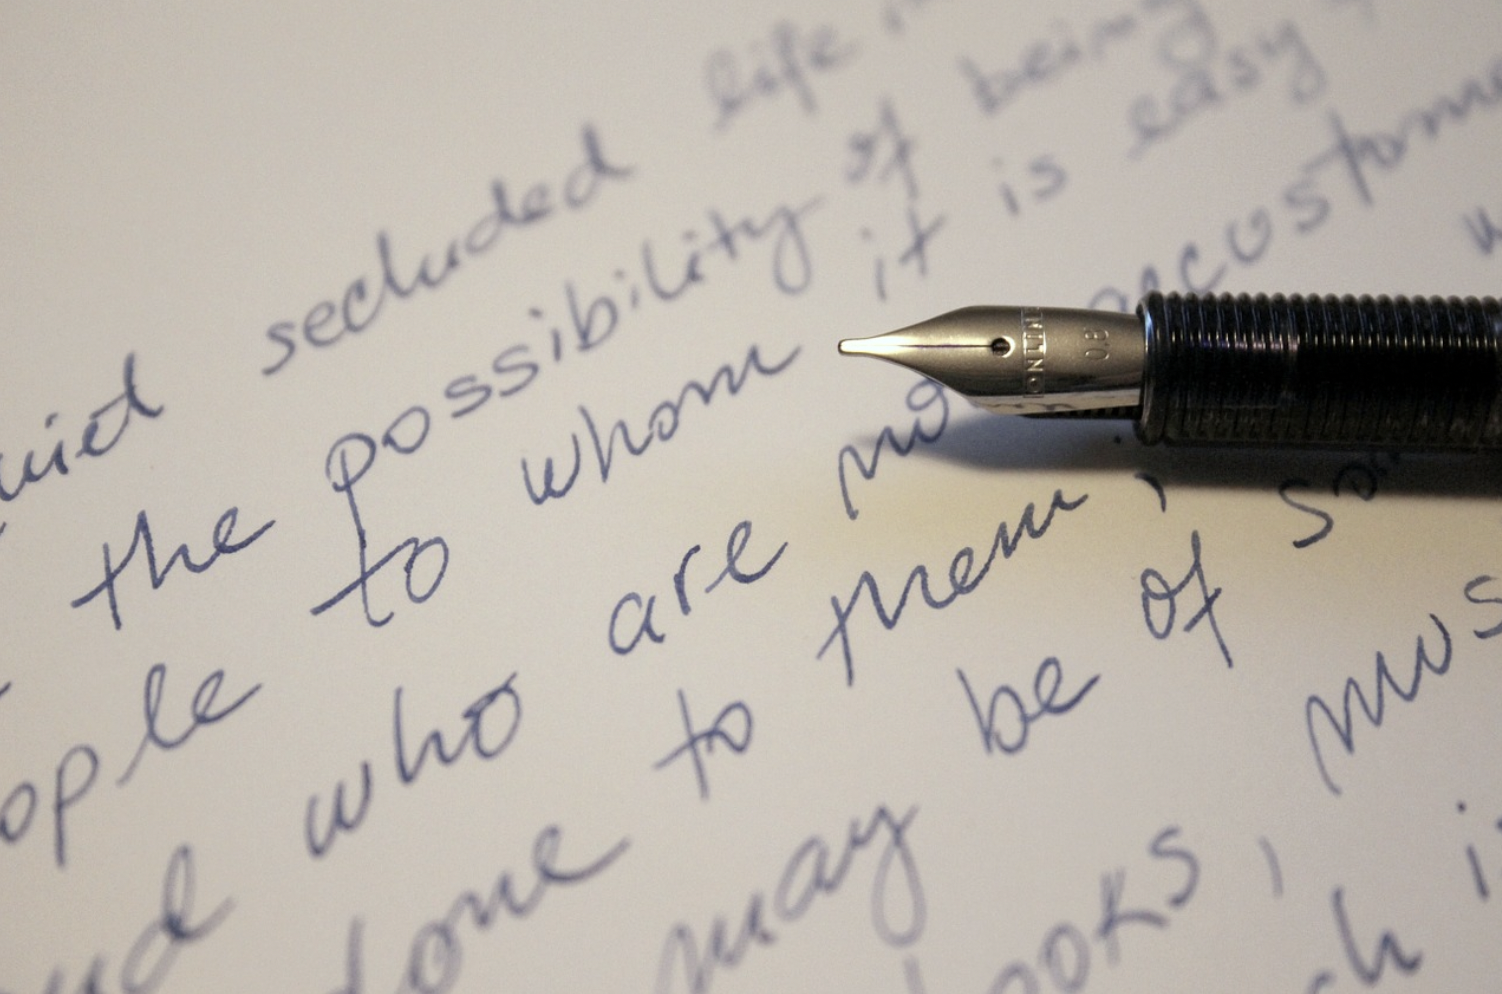 Should We Worry About Handwriting?